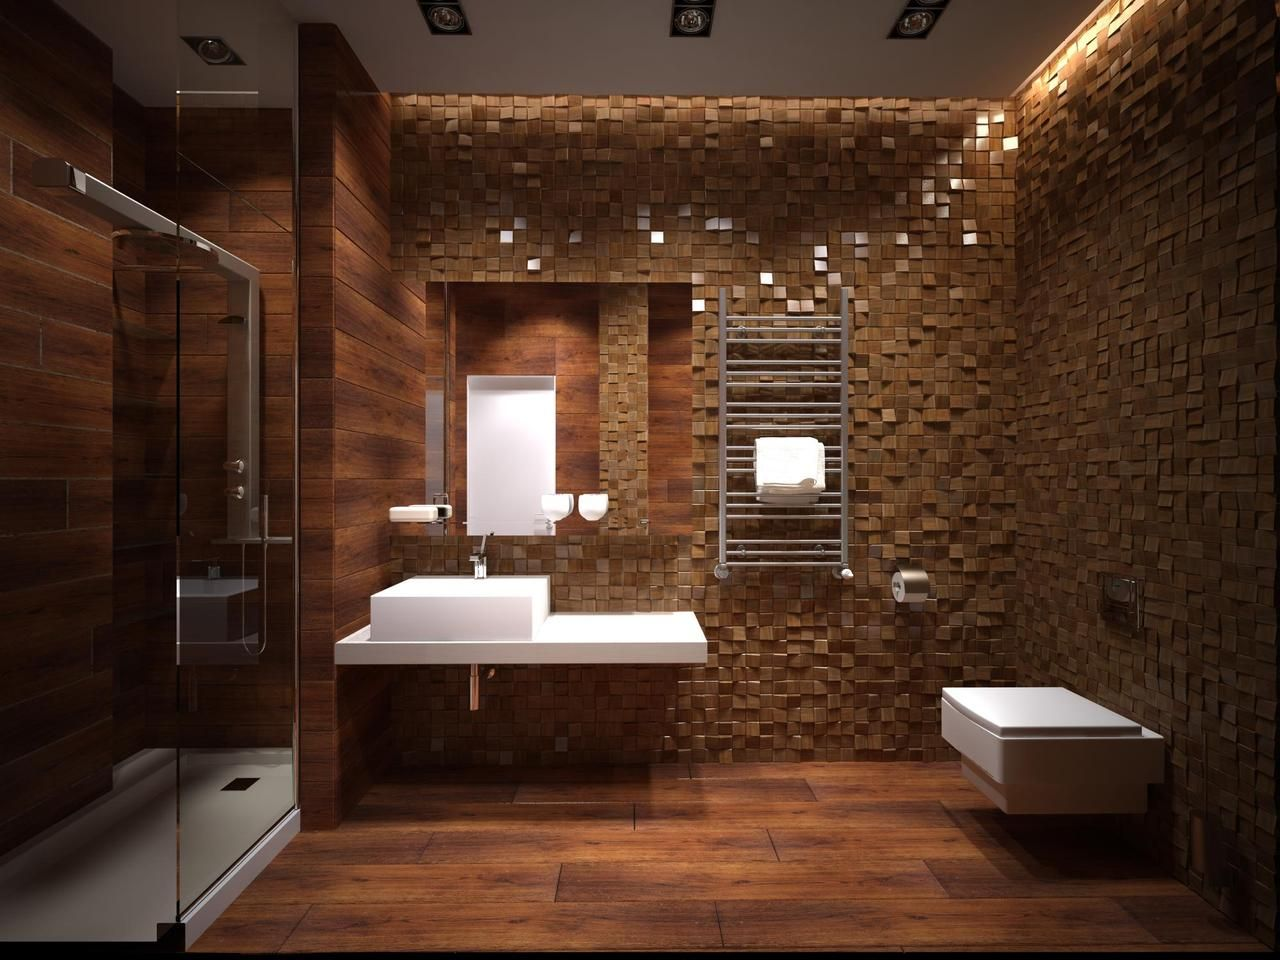 Good Hi Tech Bathroom Interior Design With Unique Wall